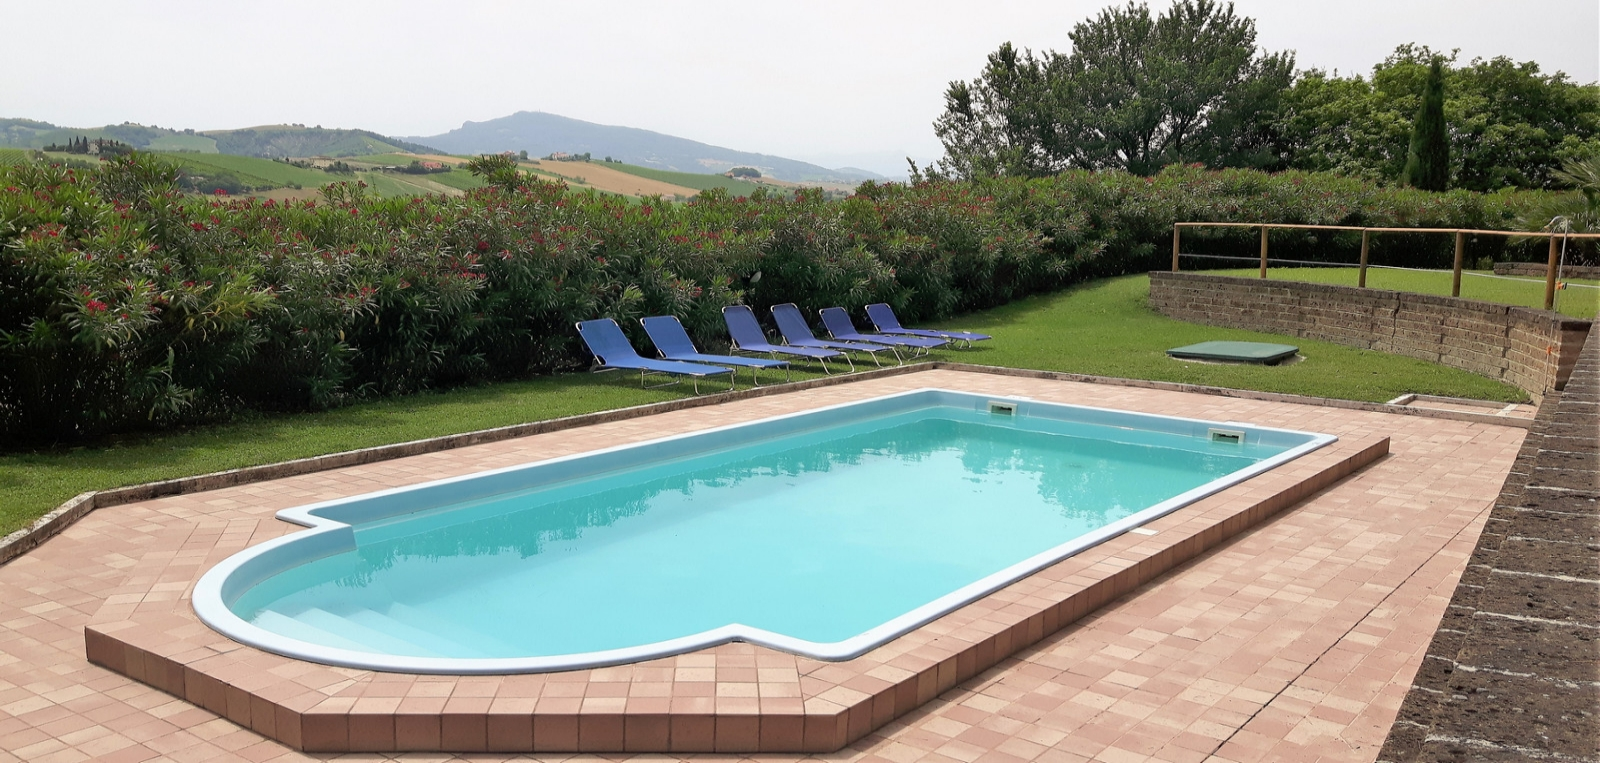 Area-Piscina-piscina-e-colline-1600x763